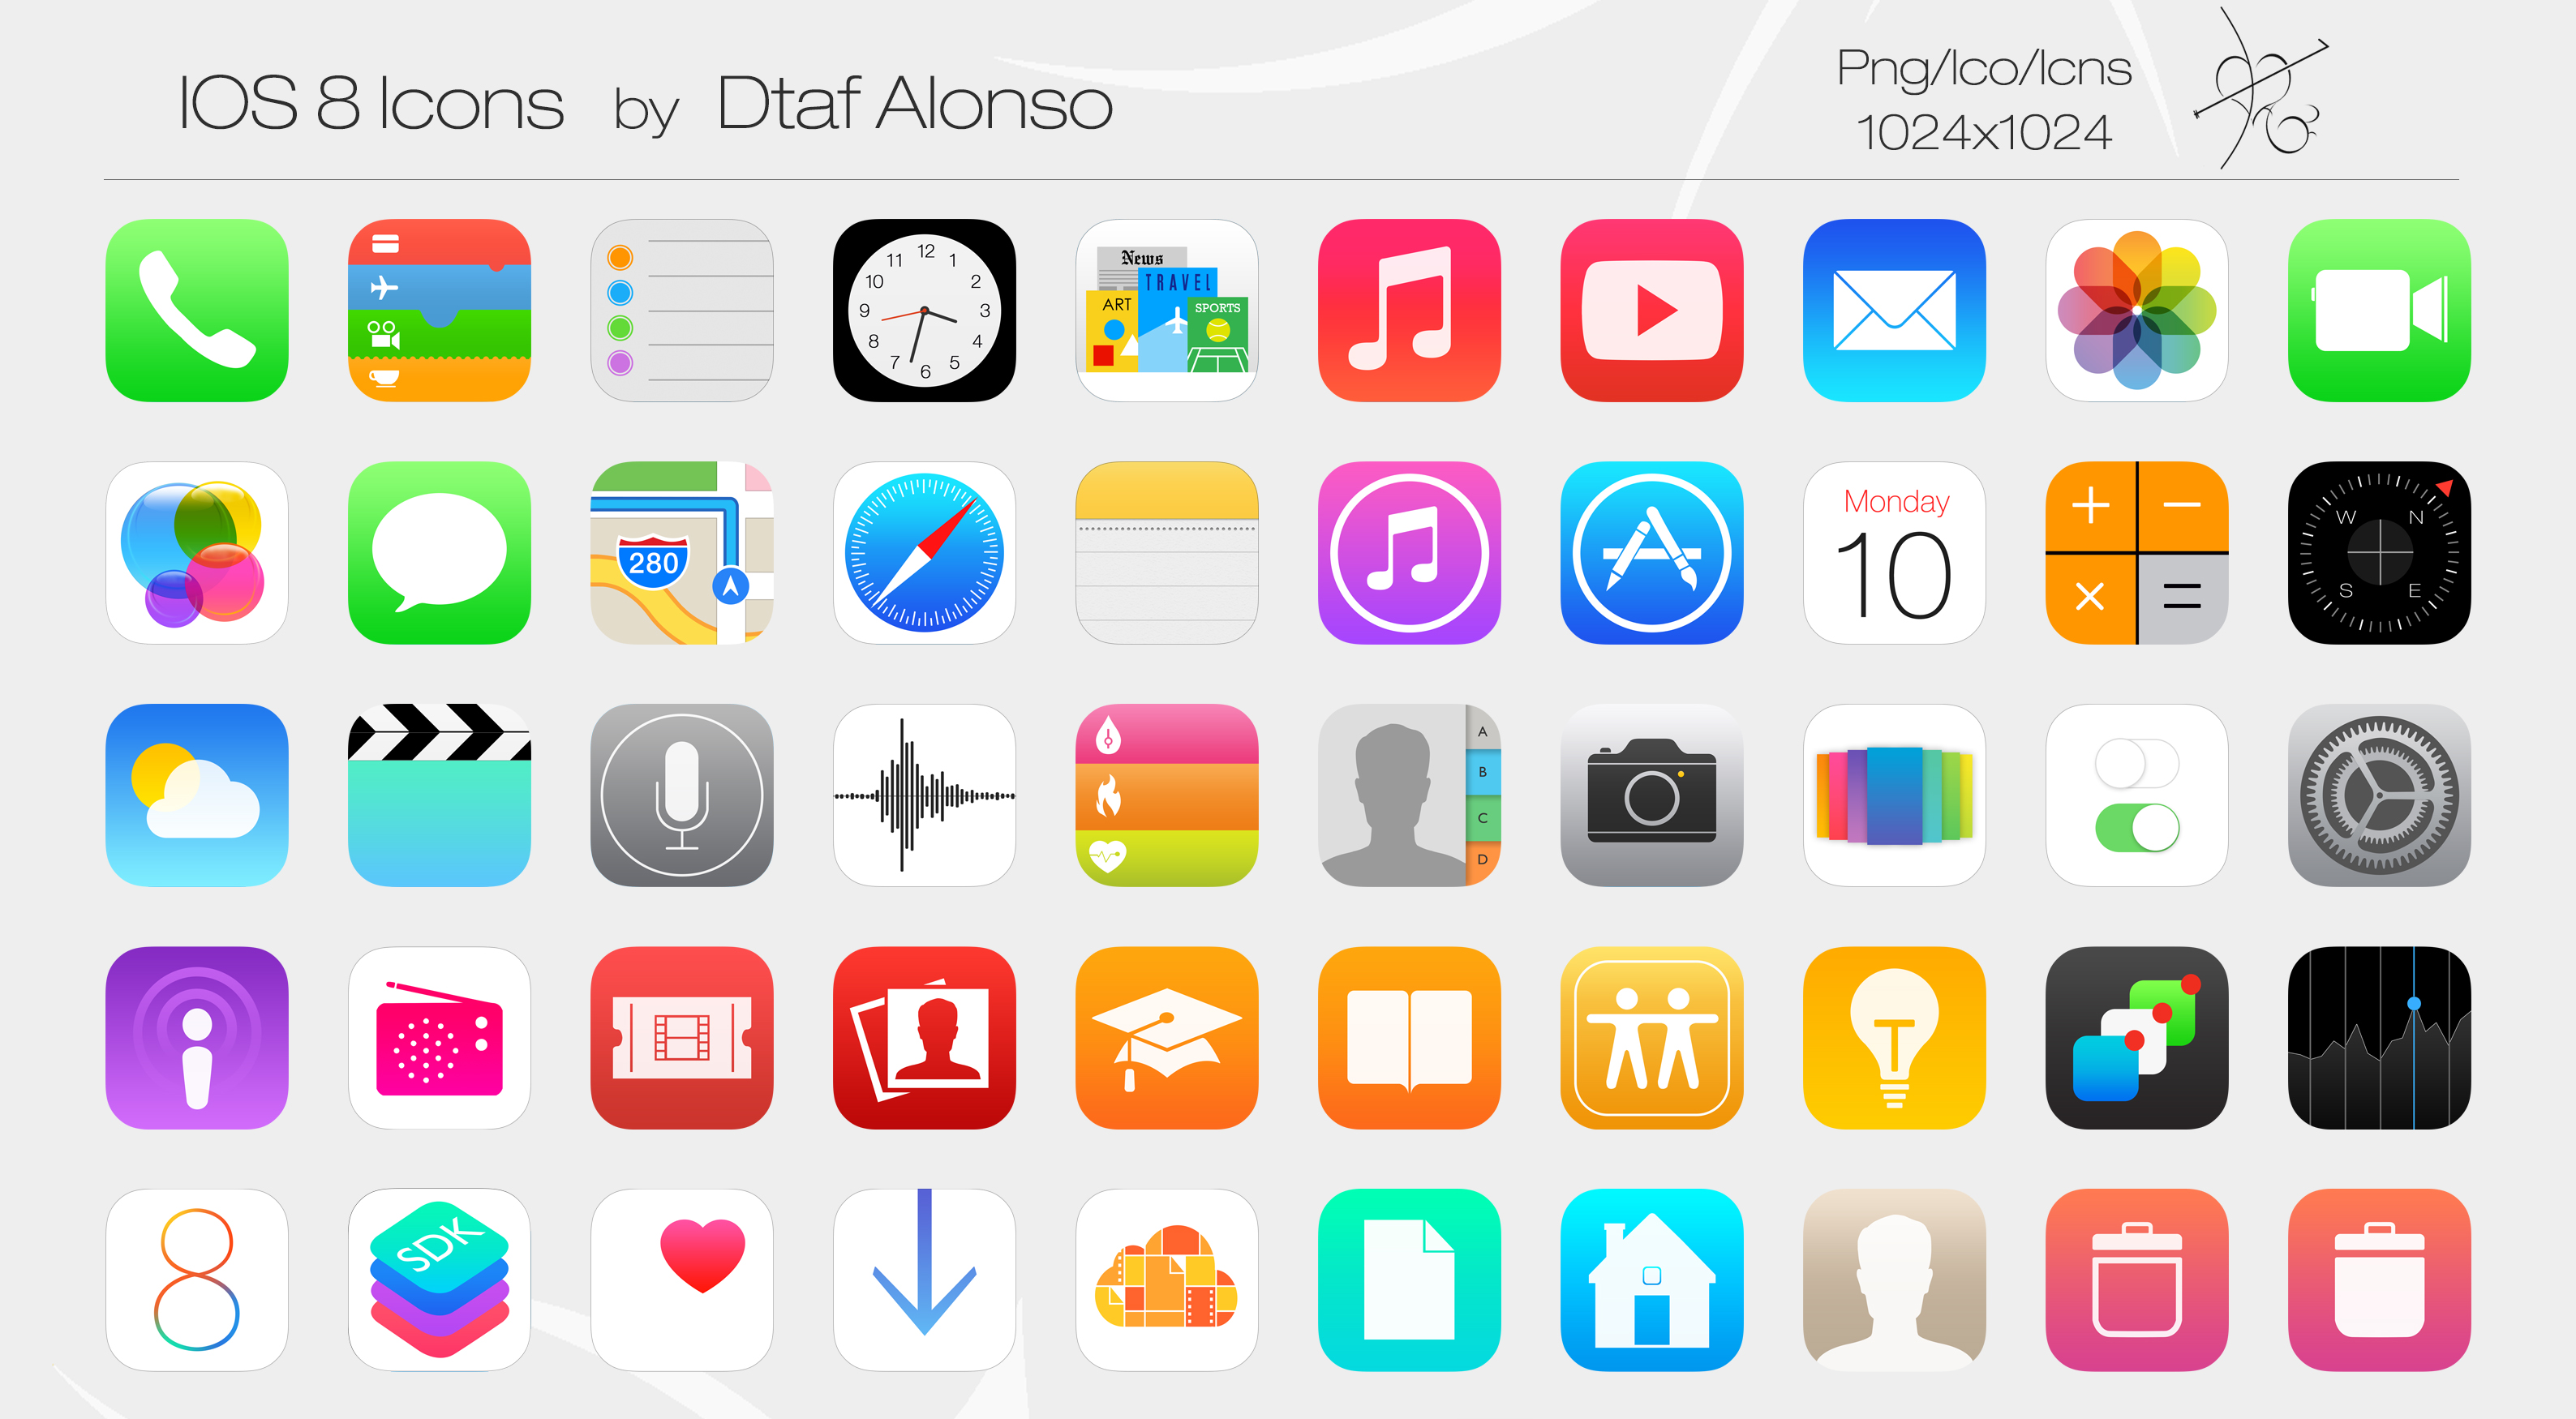 13 IOS 8 Icons Images